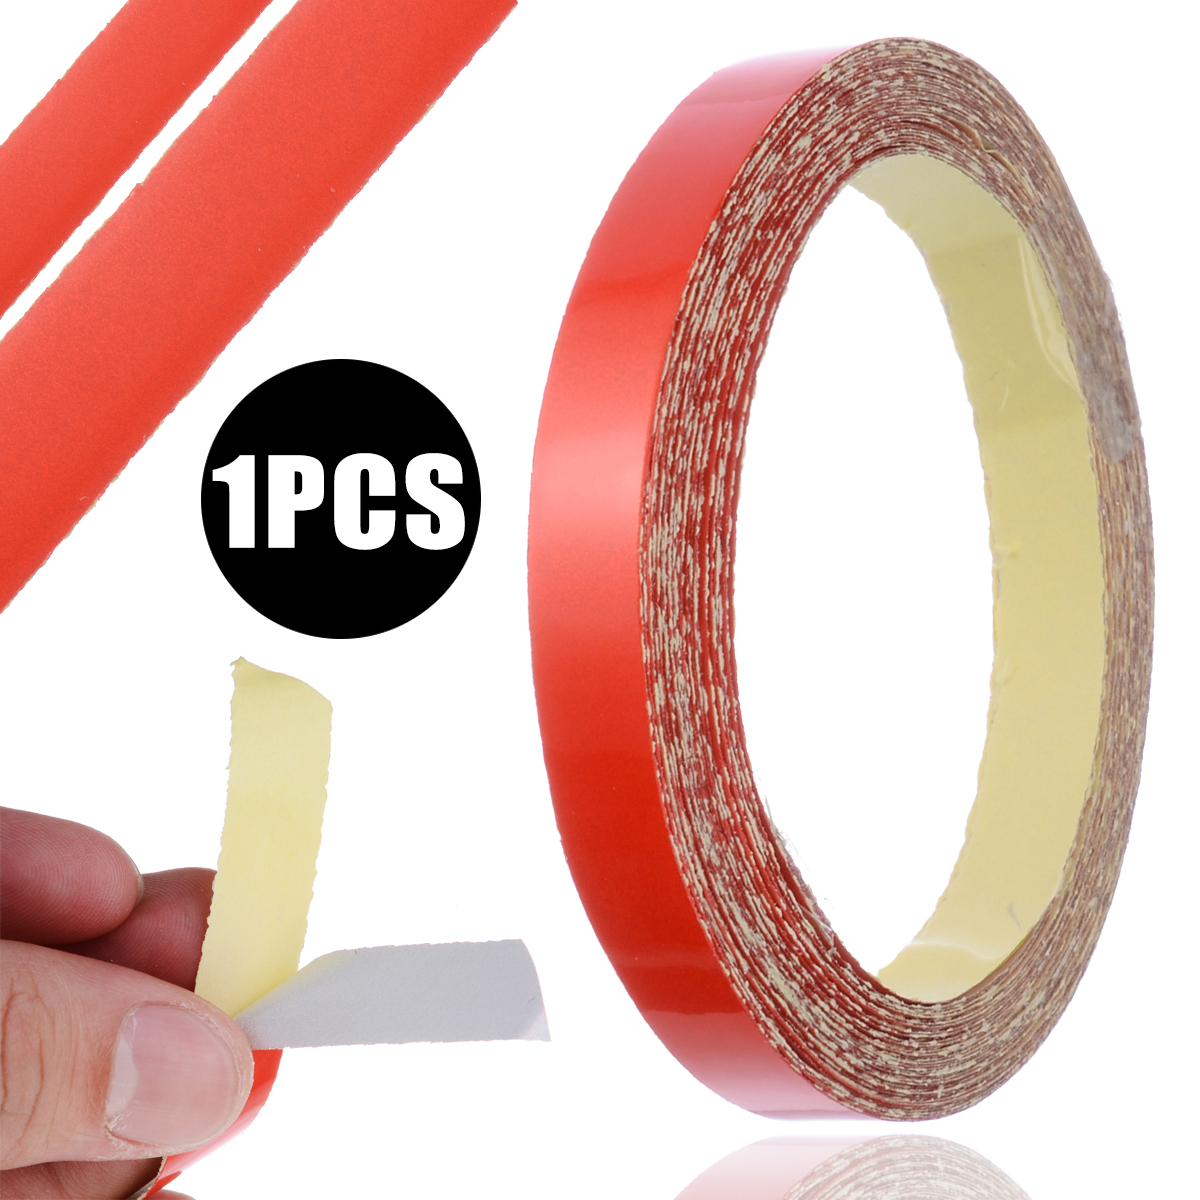 1 Roll 9M DIY Decorative Safety Reflective Tape Red Warning Roll Strip Tape Fit For Car Truck Bicycle Motorcycle